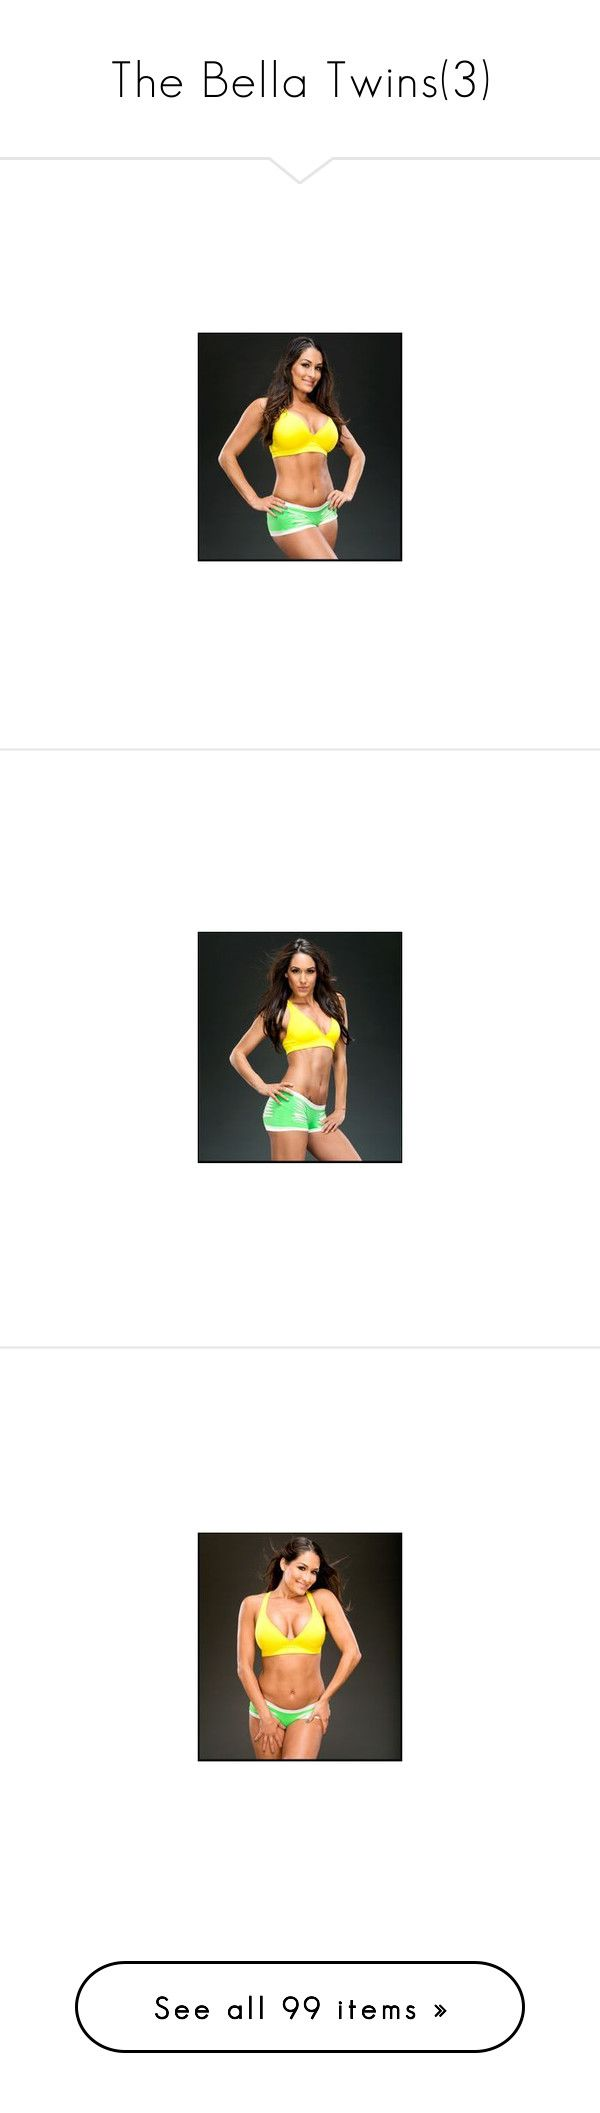 """""""The Bella Twins(3)"""" by jamiehemmings19 ❤ liked on Polyvore featuring people, the bella twins, wwe, brie bella, wrestling, divas, home, home decor, pictures and tops"""